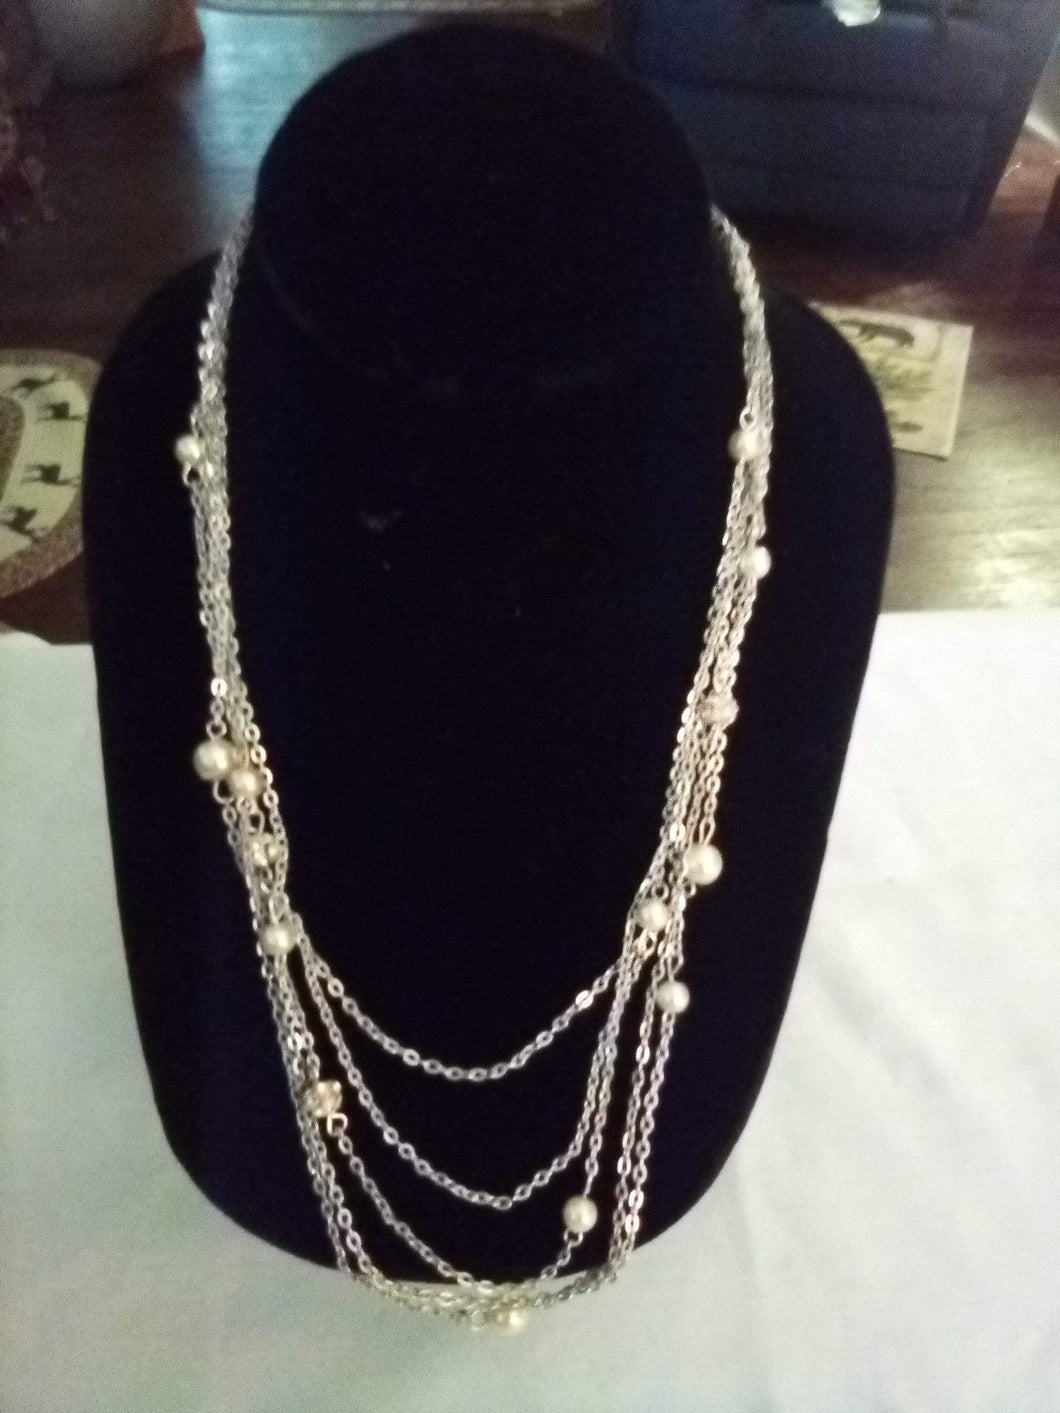 Silver tone pearl like necklace - B&P'sringsnthings